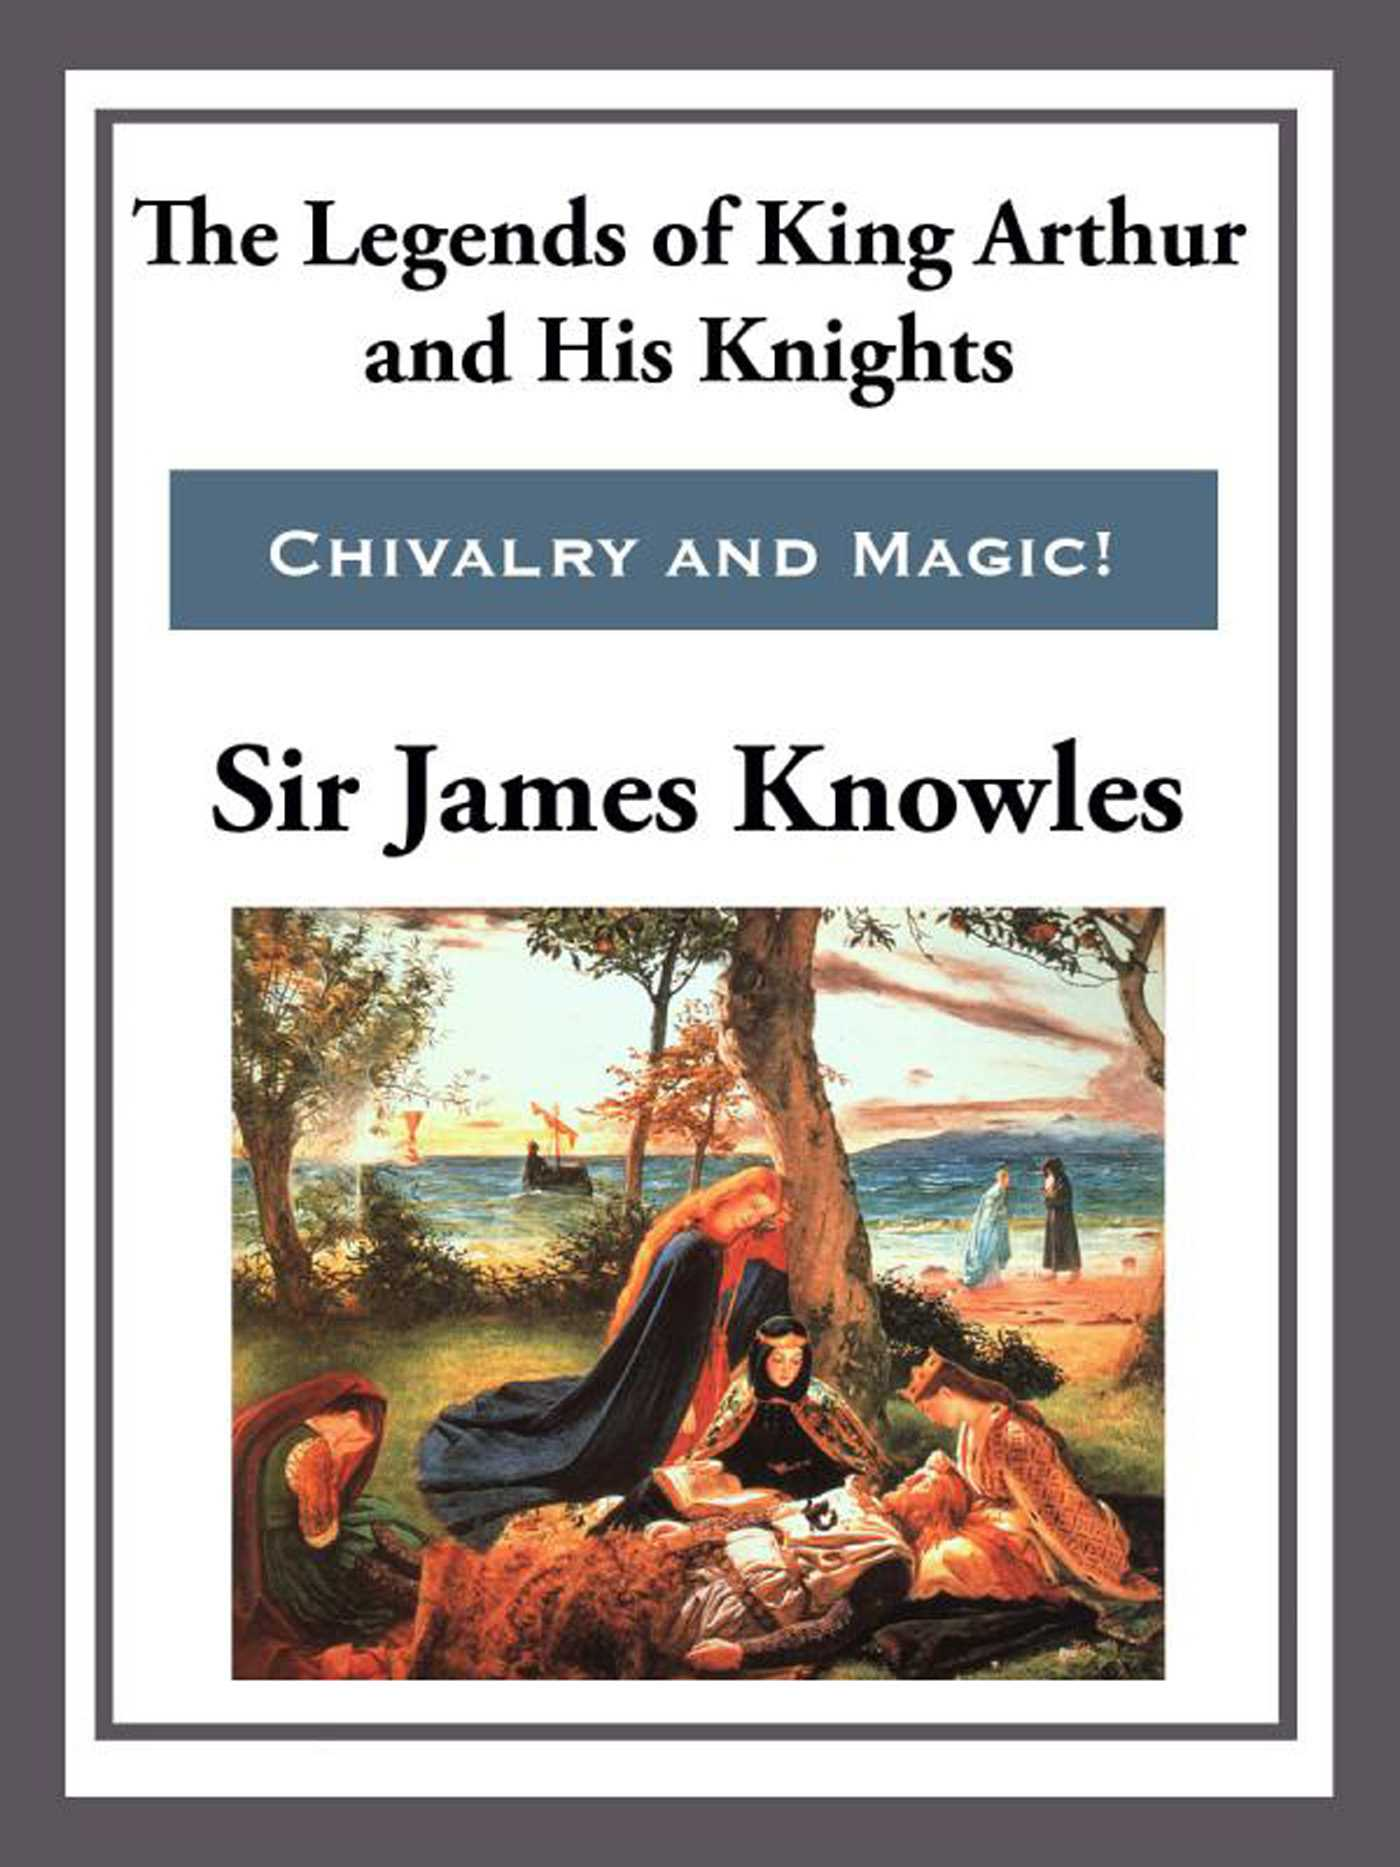 an introduction to the chivalry in the legend of king arthur It is interesting to note that king arthur's life depends on two things: his remaining faithful to his word, and sir gromer, also a knight bound by the code of chivalry, remaining true to his word if arthur does not trust that sir gromer will honor the code and spare his life, it would seem unreasonable for him to agree to such a deal in the end, we find that.